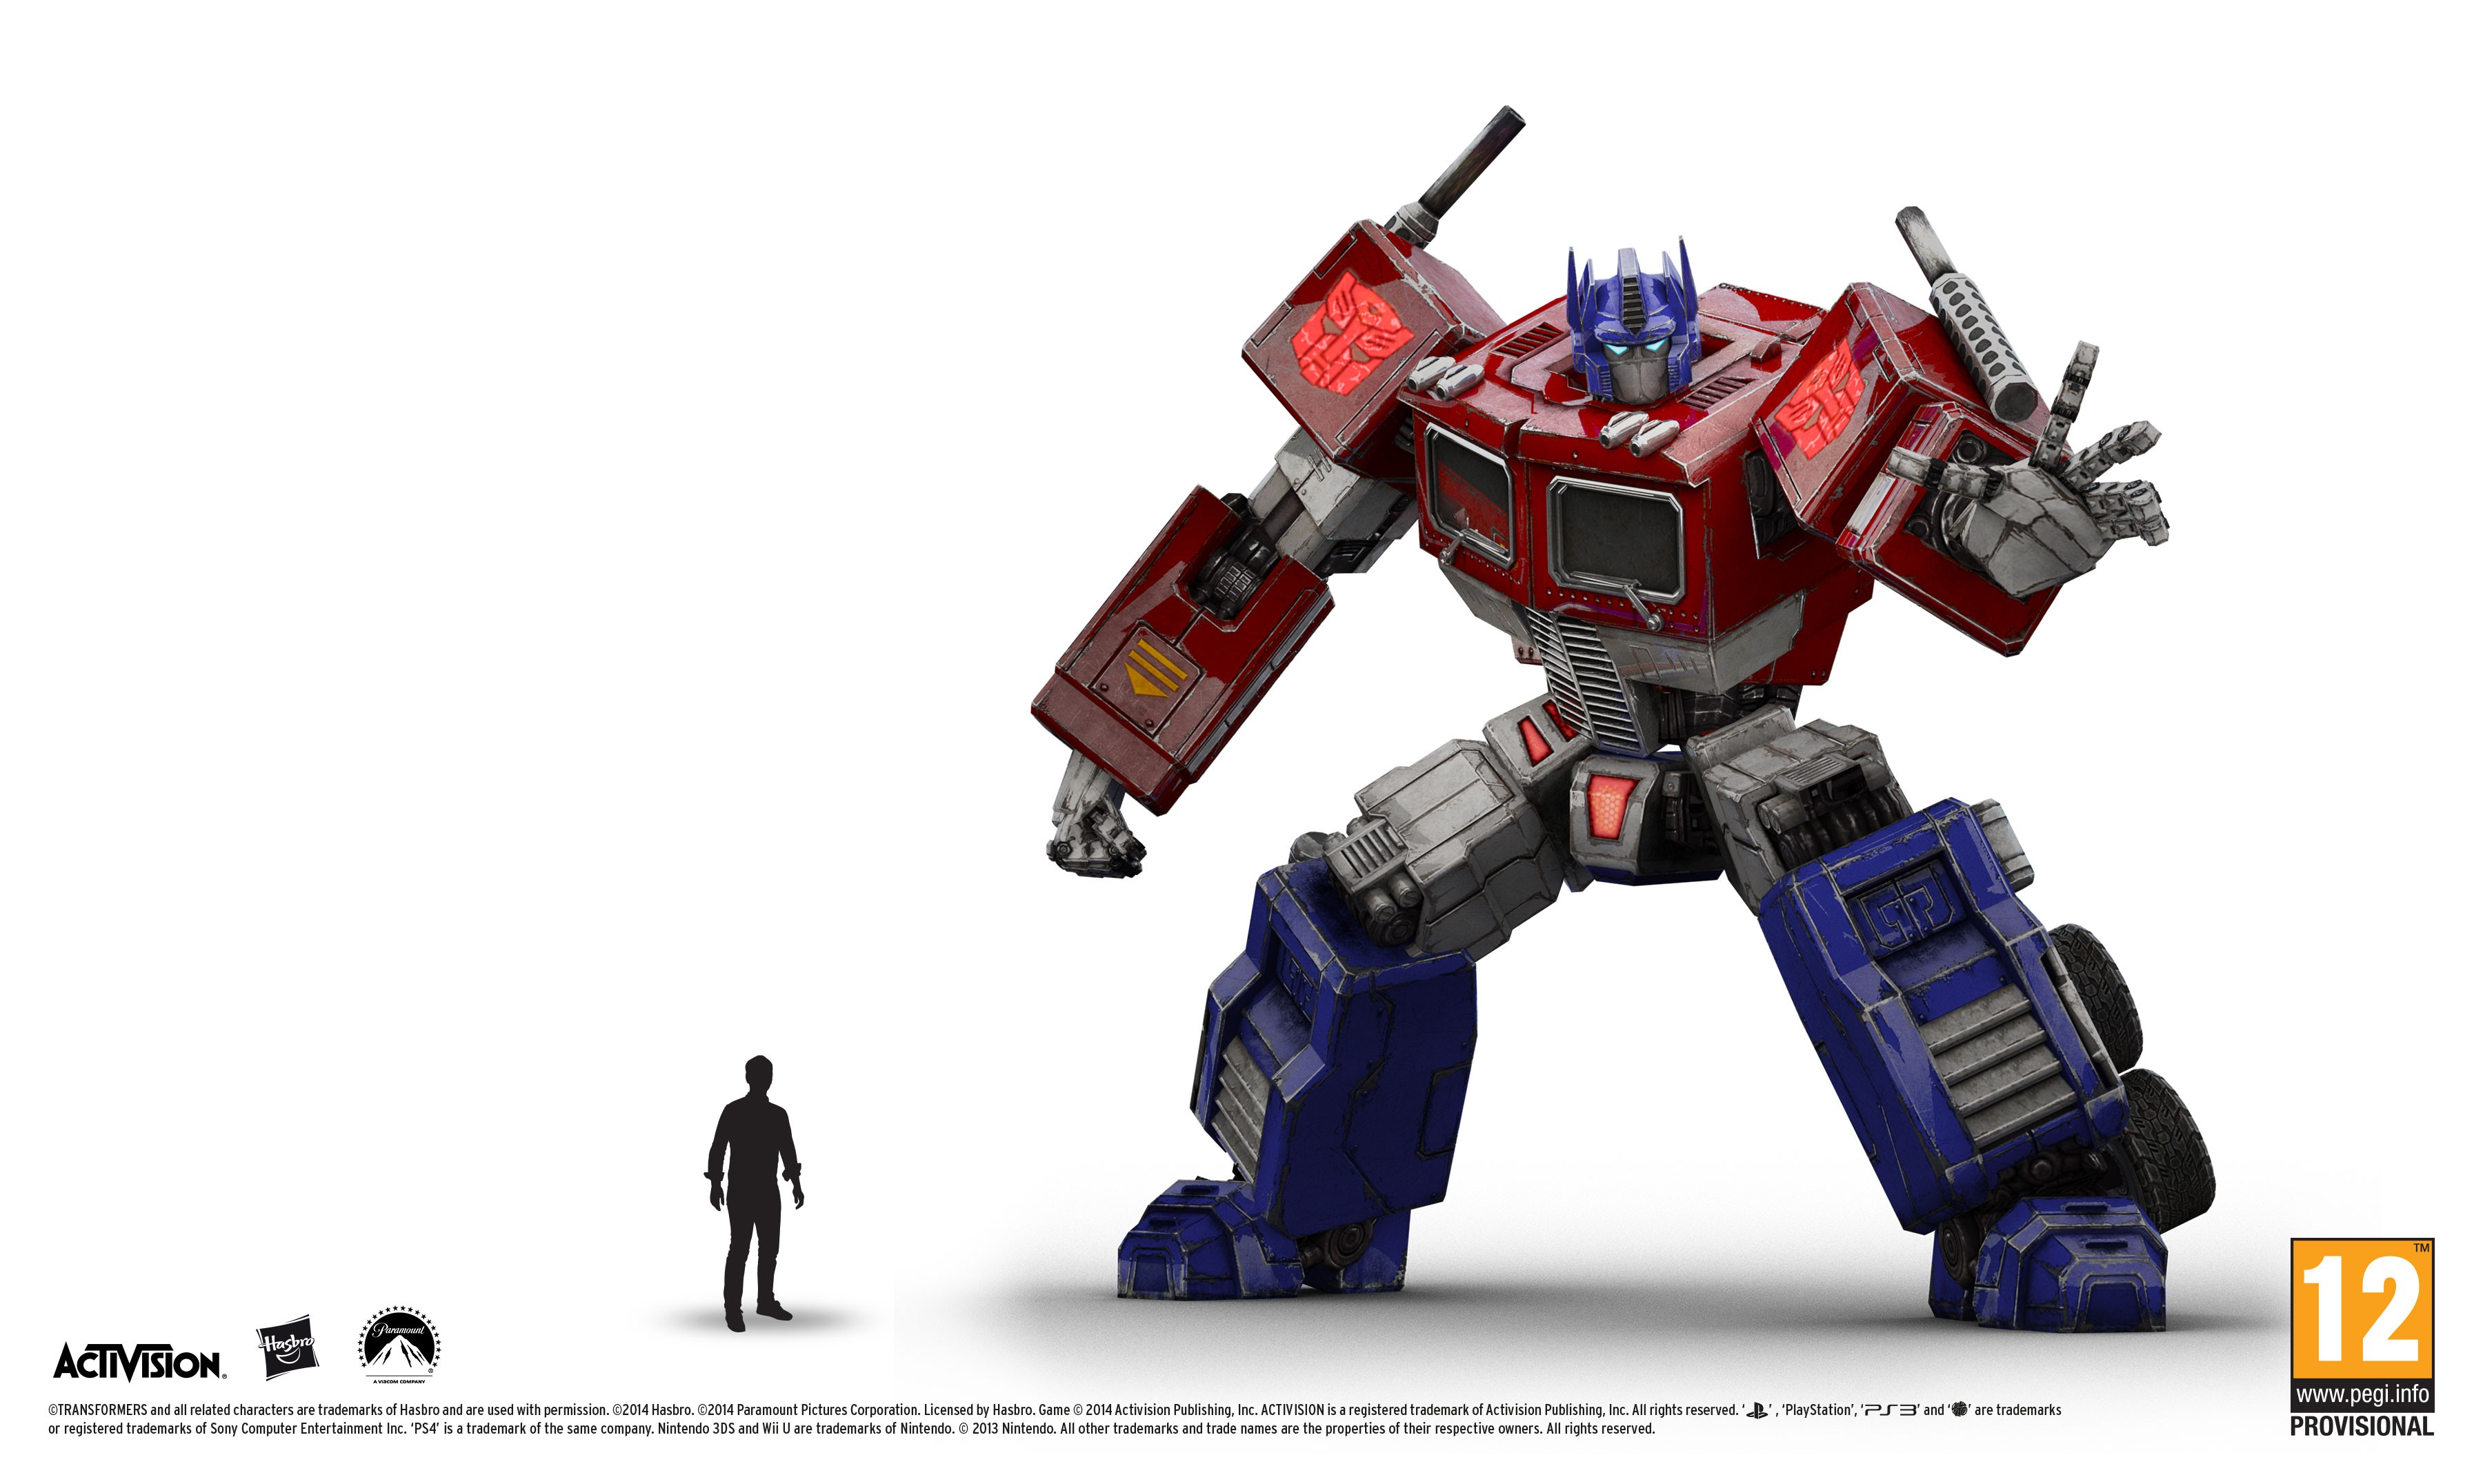 pictures of optimus prime in transformers: rise of the dark spark 4/5